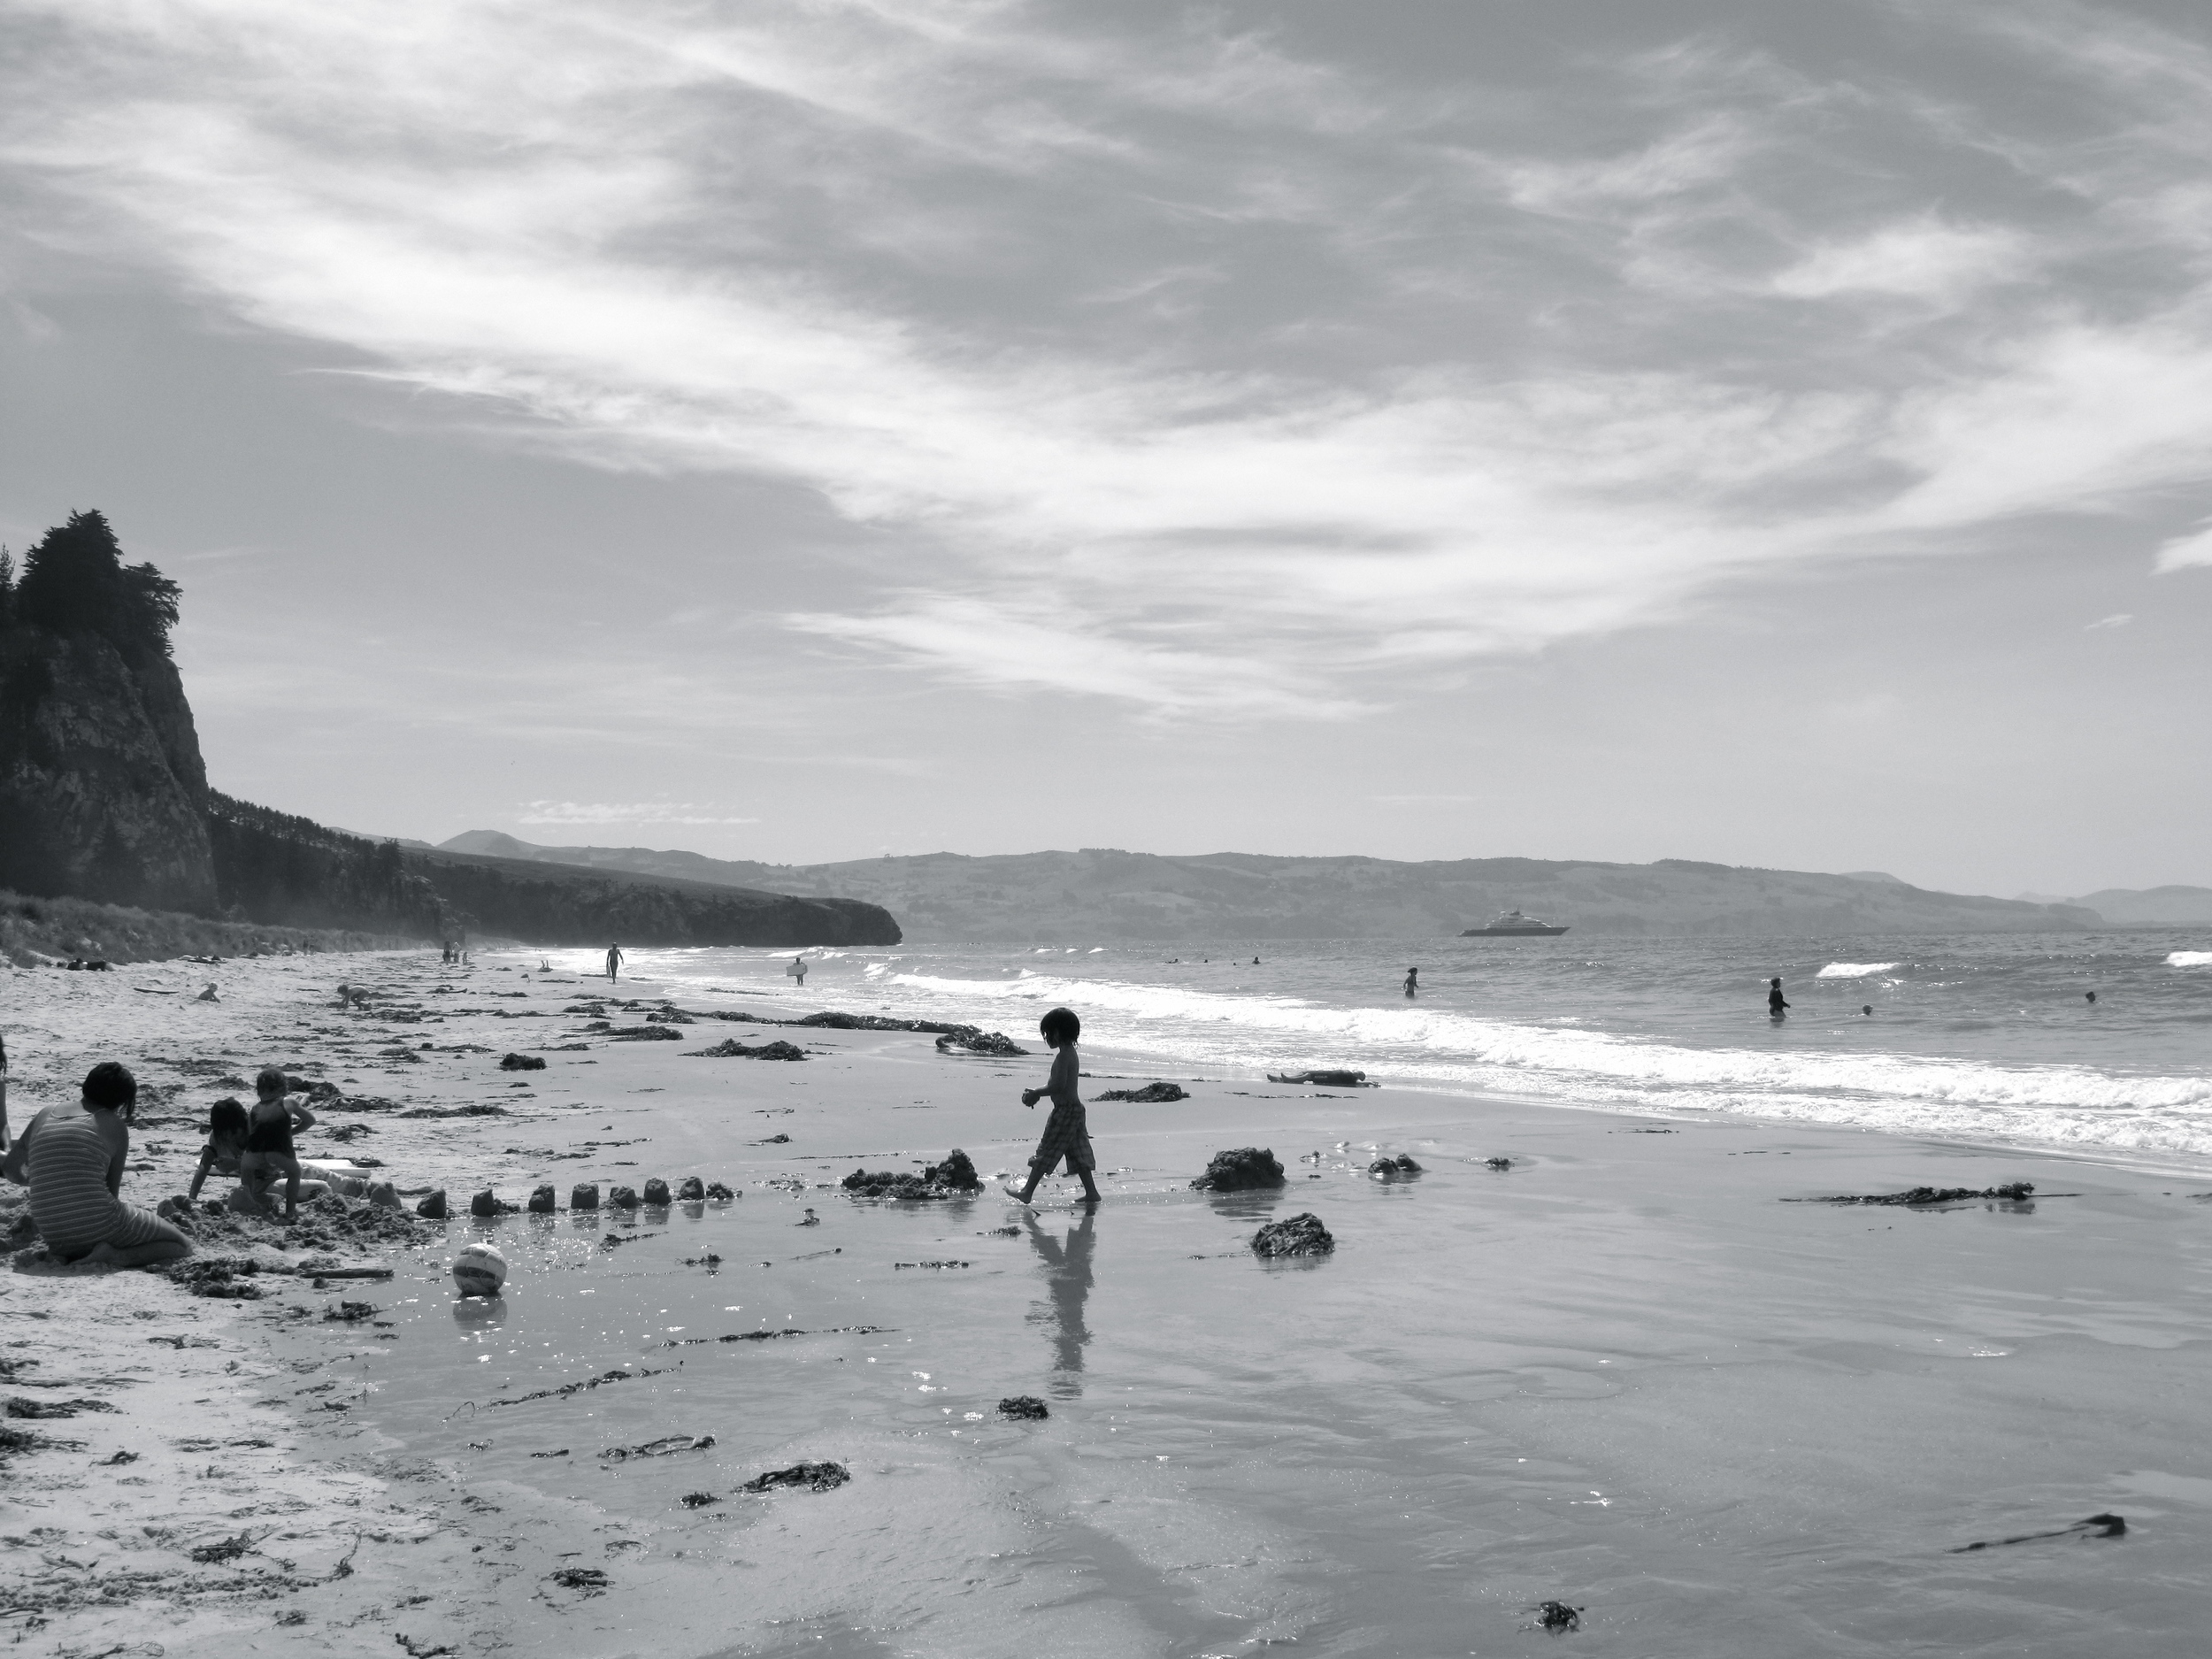 kid making sandcastles at the beach - black and white art photo